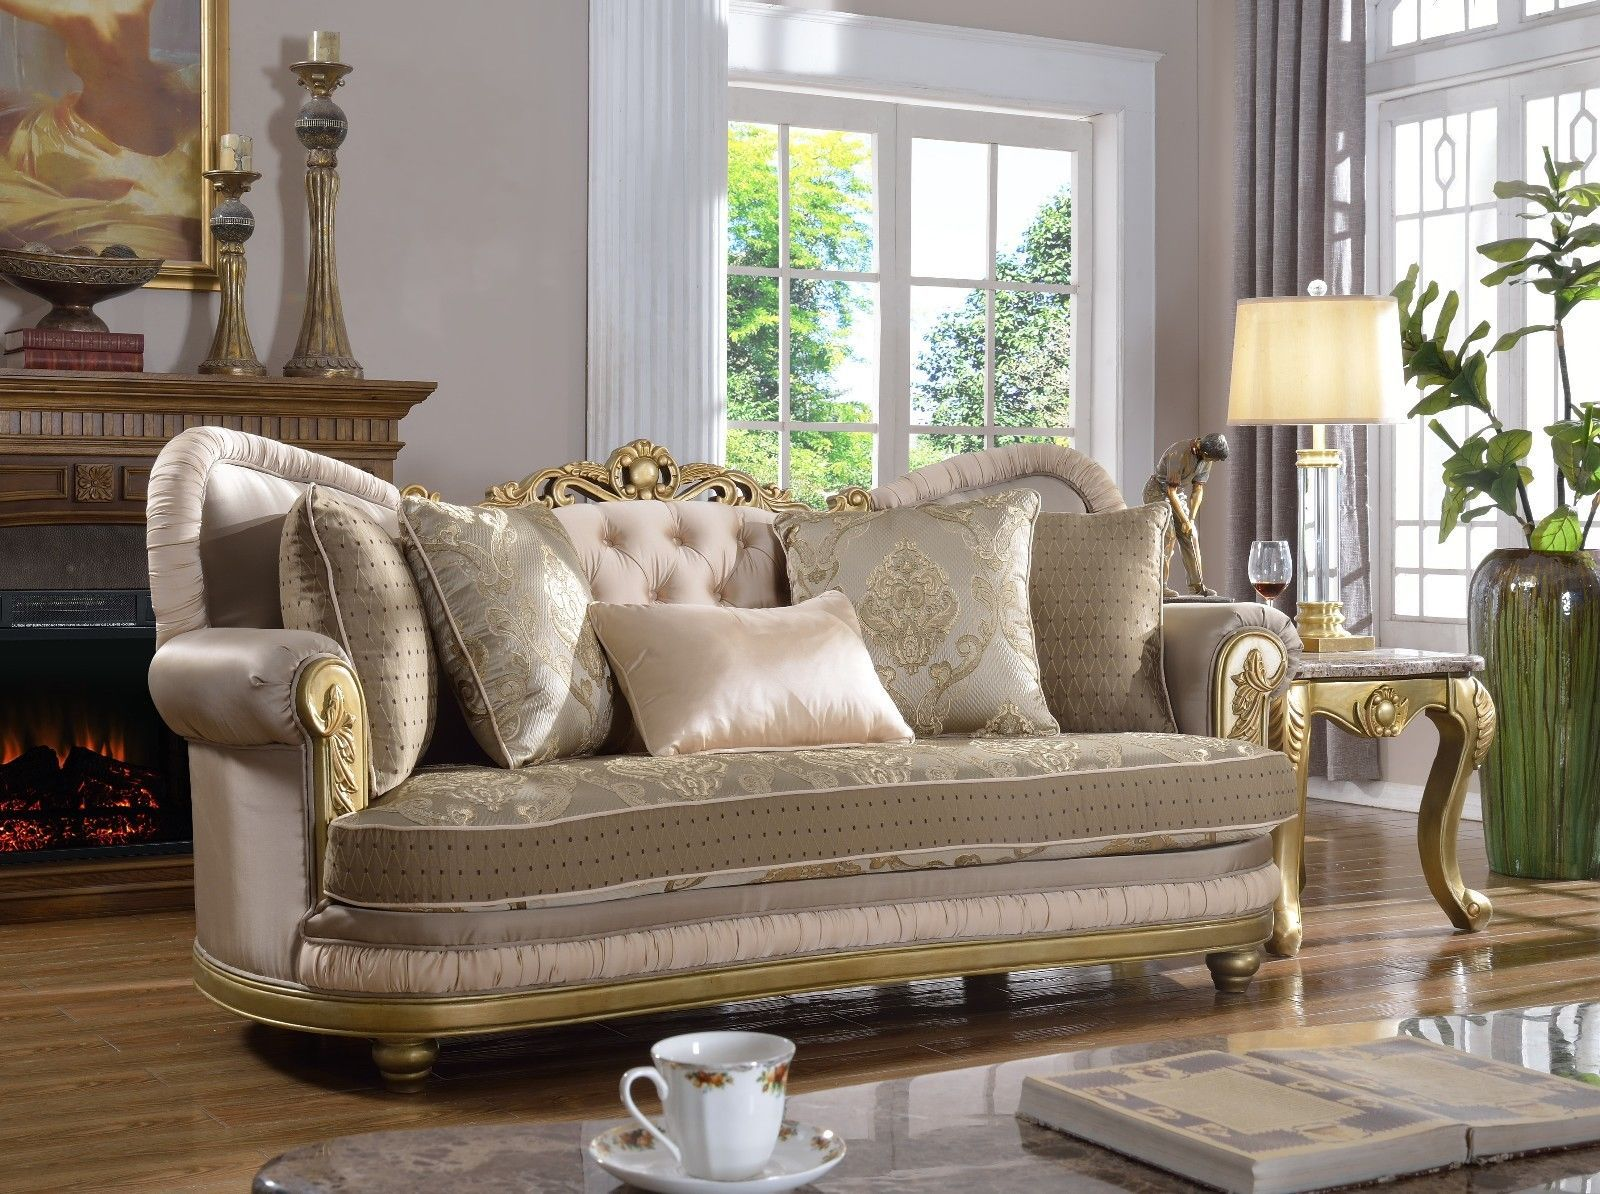 Meridian 658 Living Room Sofa Set 2pc. Tufted Rich Gold Traditional Style